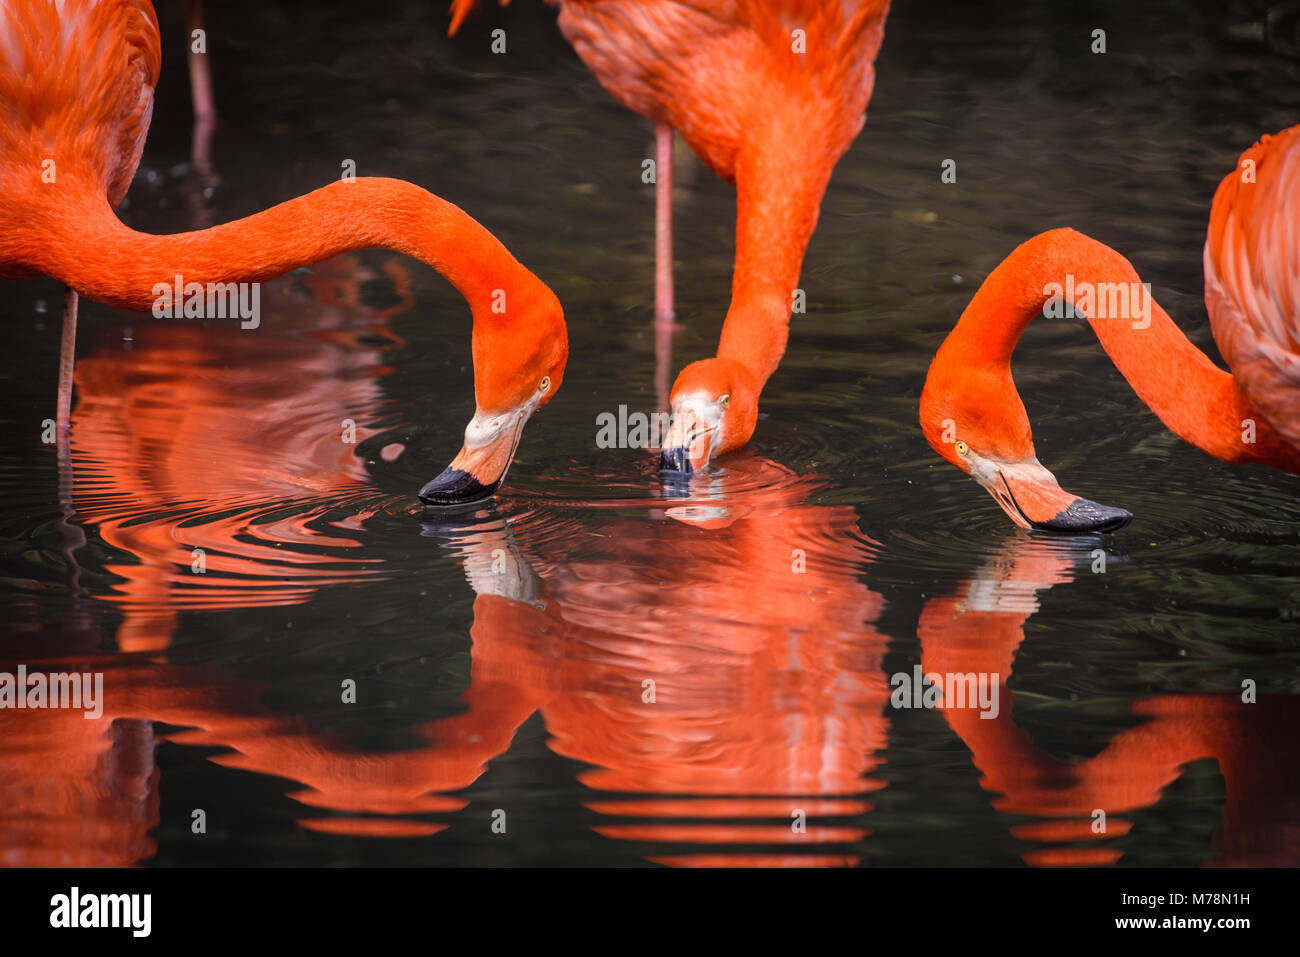 Flamingos or flamingoes are a type of wading bird in the family Phoenicopteridae. Red Flamingos come from America - Stock Image